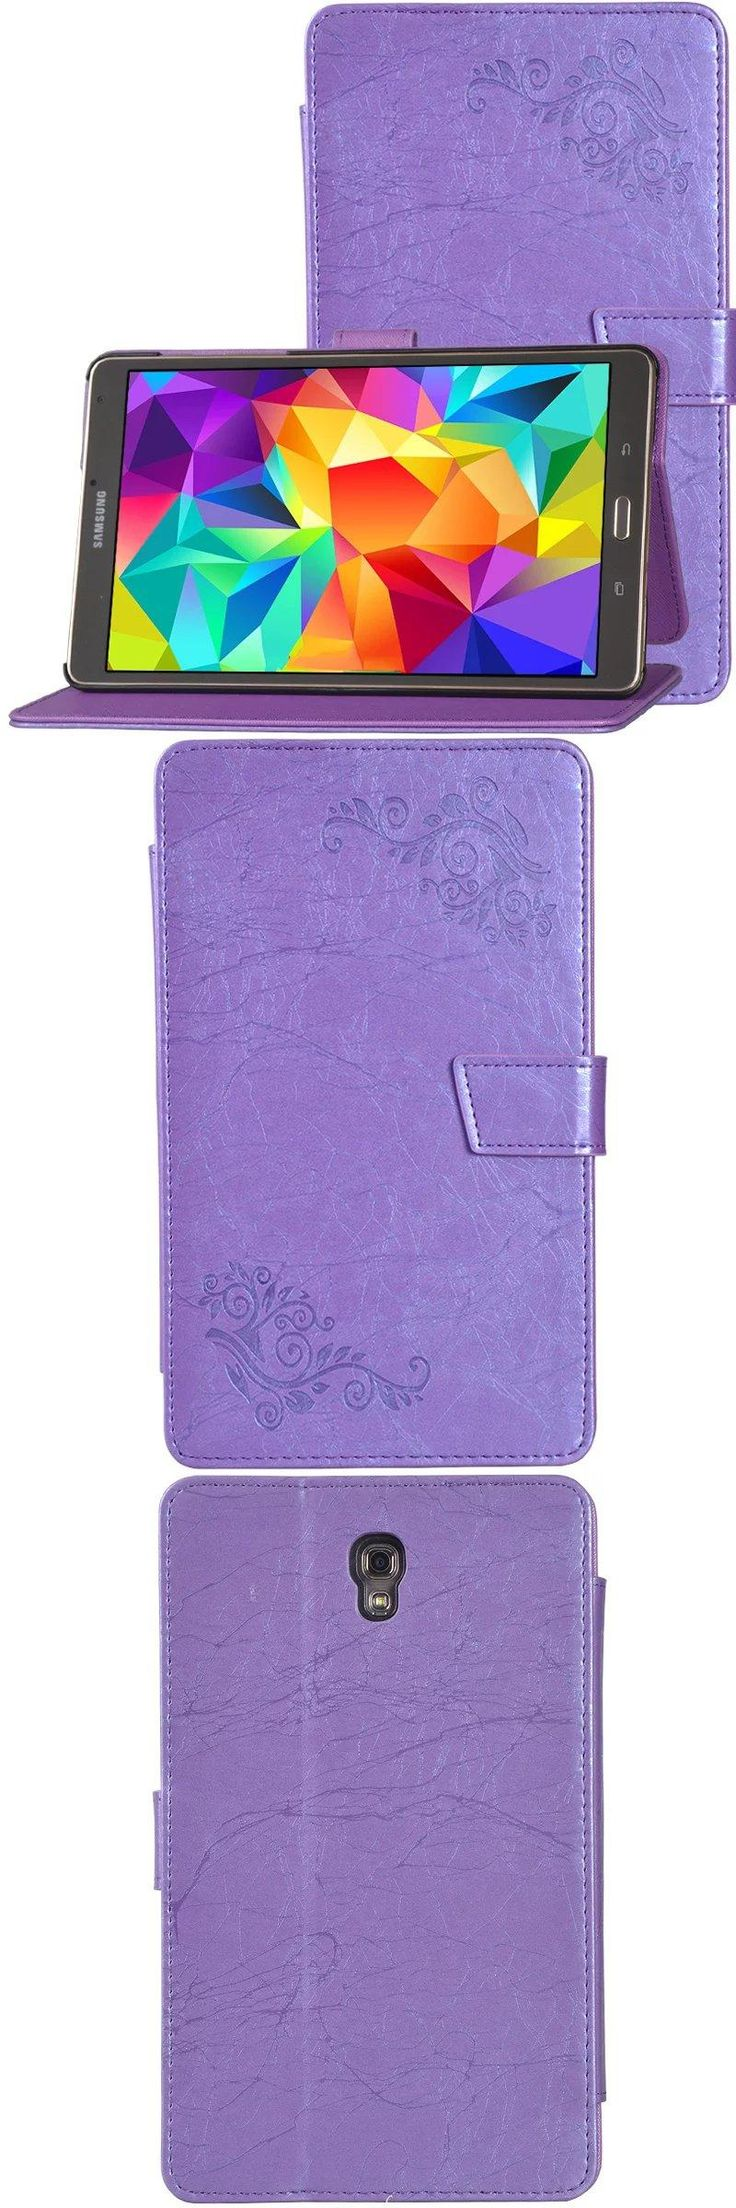 [Visit to Buy] Luxury Print Flower PU Leather Case Cover for Samsung Galaxy Tab S 8.4 T700 T705 SM-T700 SM-T705 + Clear Screen Protector #Advertisement